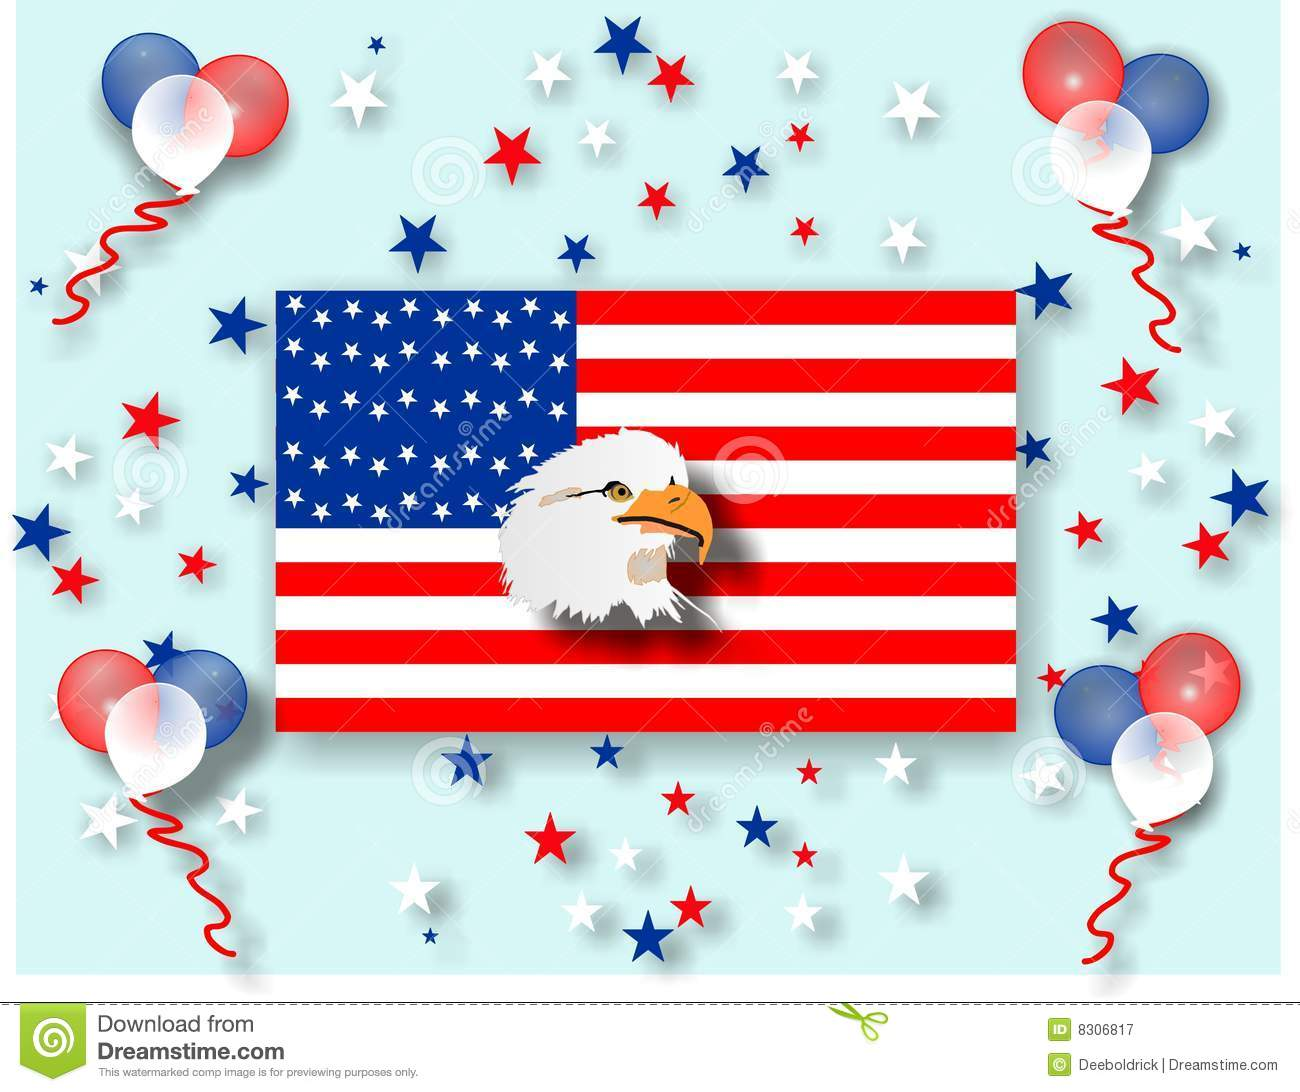 Let the celebrations begin holidays celebrated in the us with